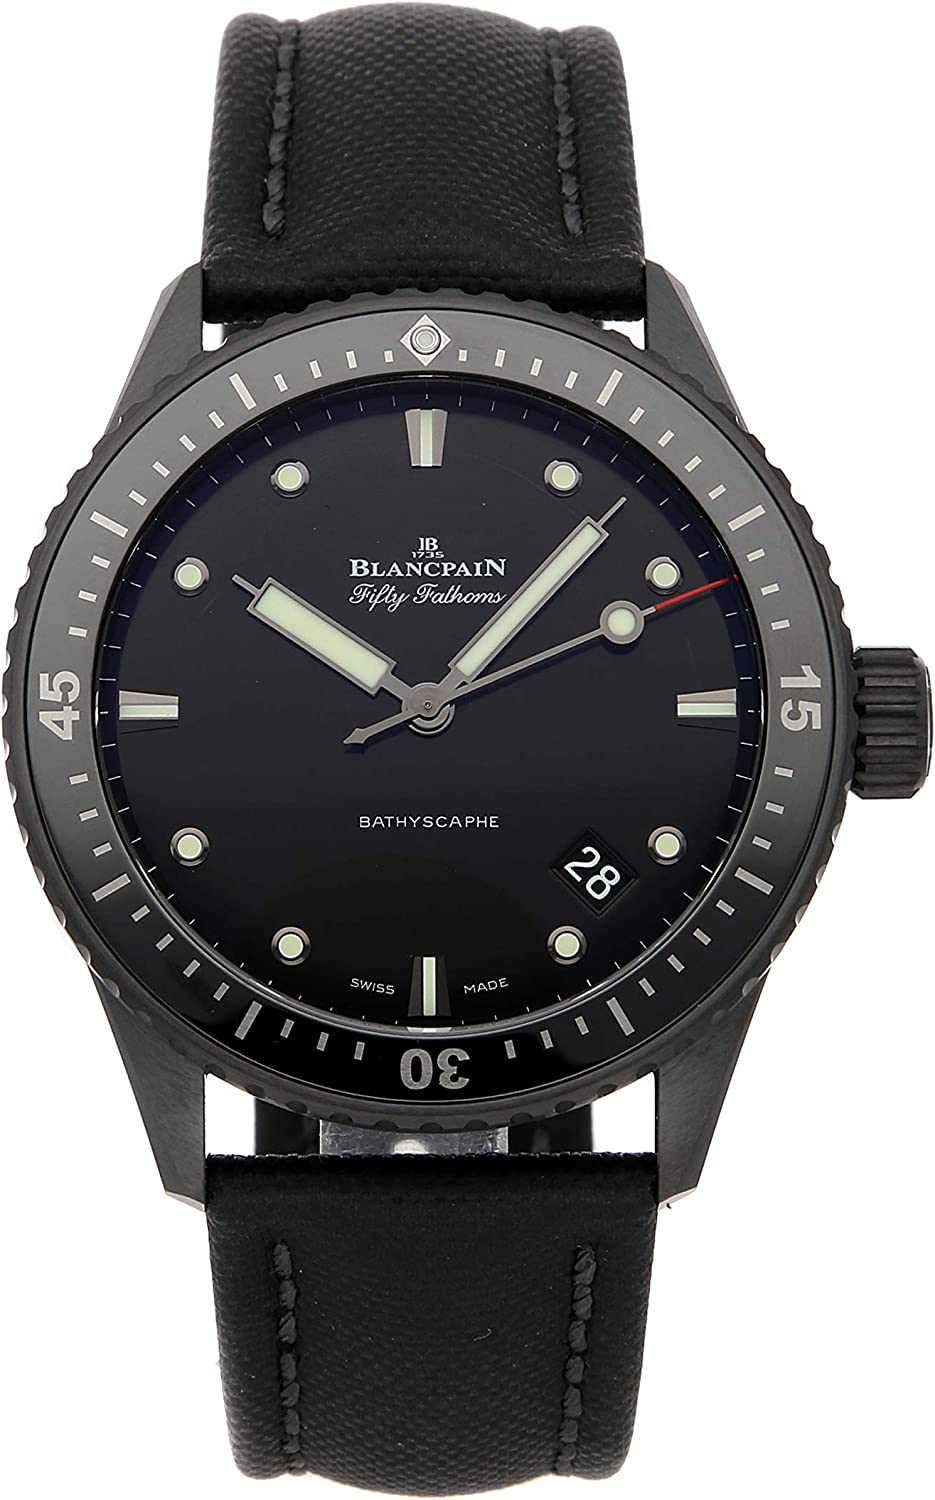 B086PWCPSD Blancpain Fifty Fathoms Mechanical (Automatic) Black Dial Mens Watch 5000-0130-B52A (Certified Pre-Owned) 71DQ2BvJmTCL.UL1500_